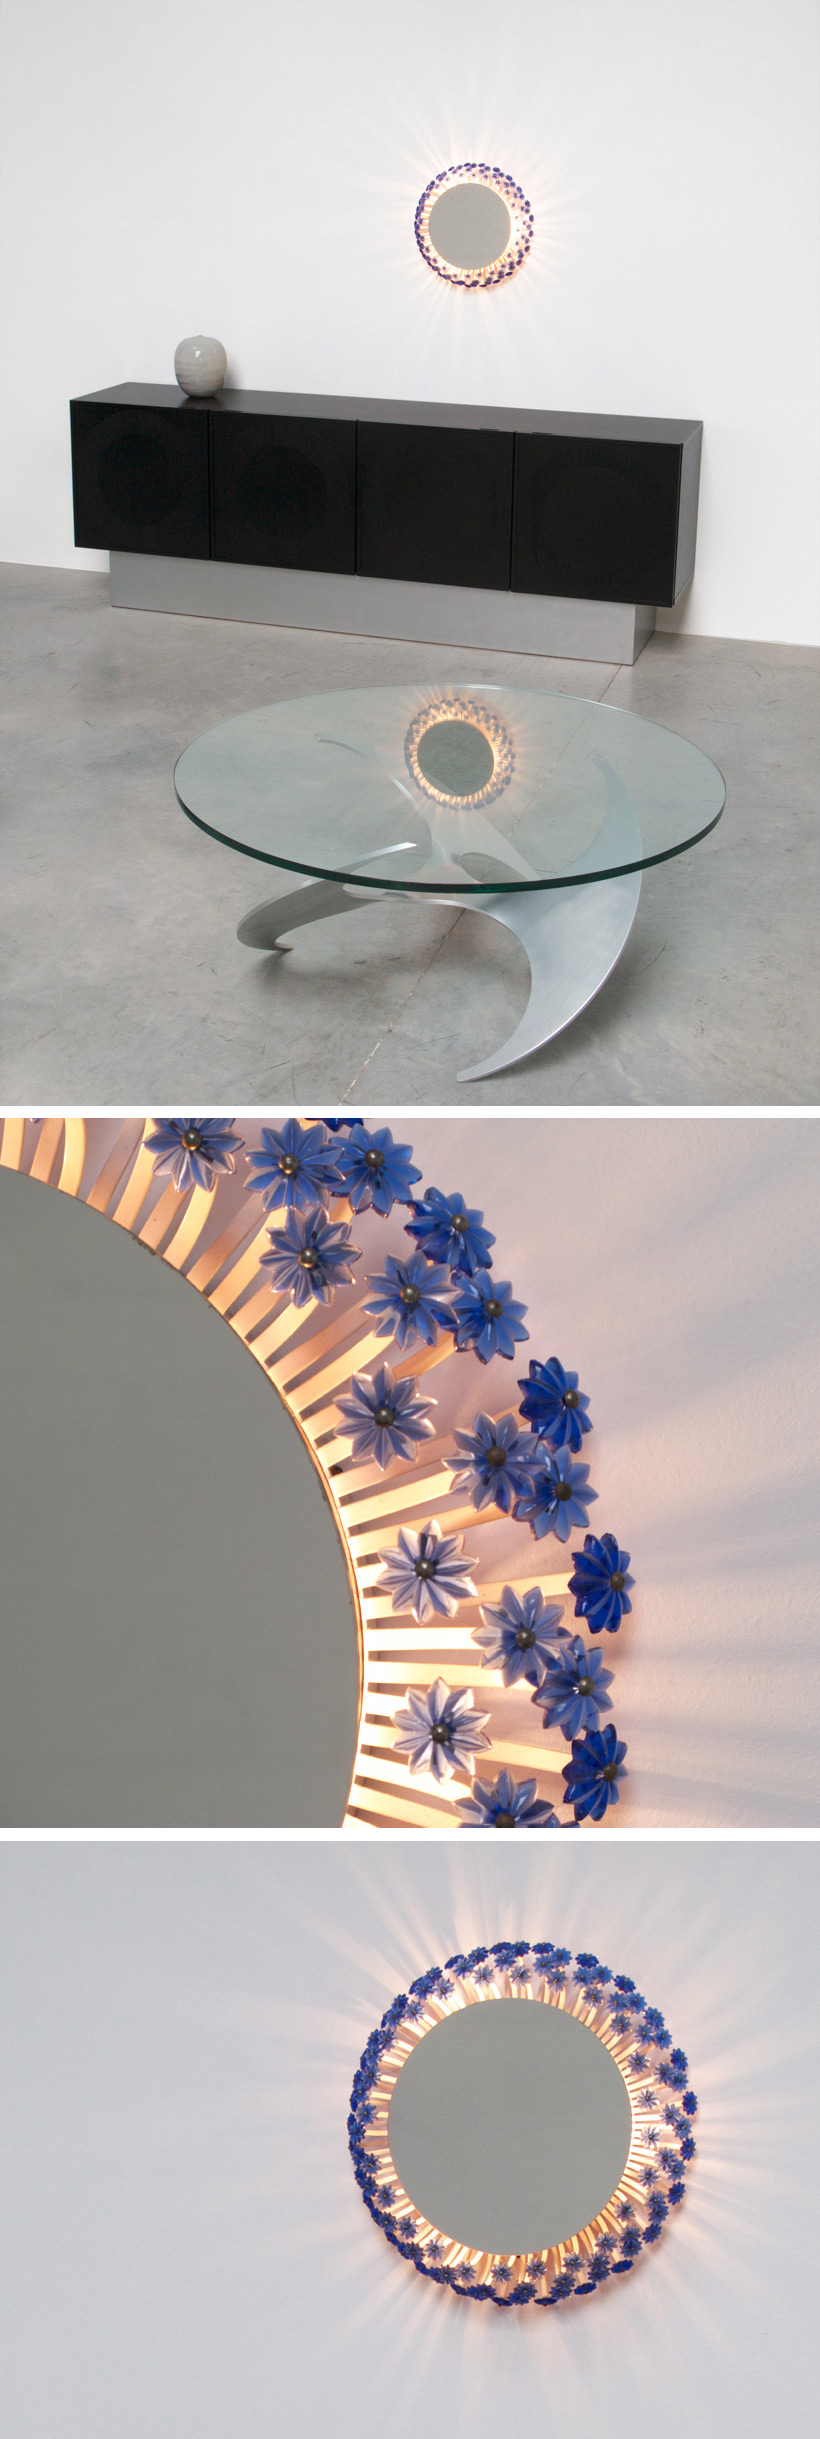 Illuminated circular flower mirror Large